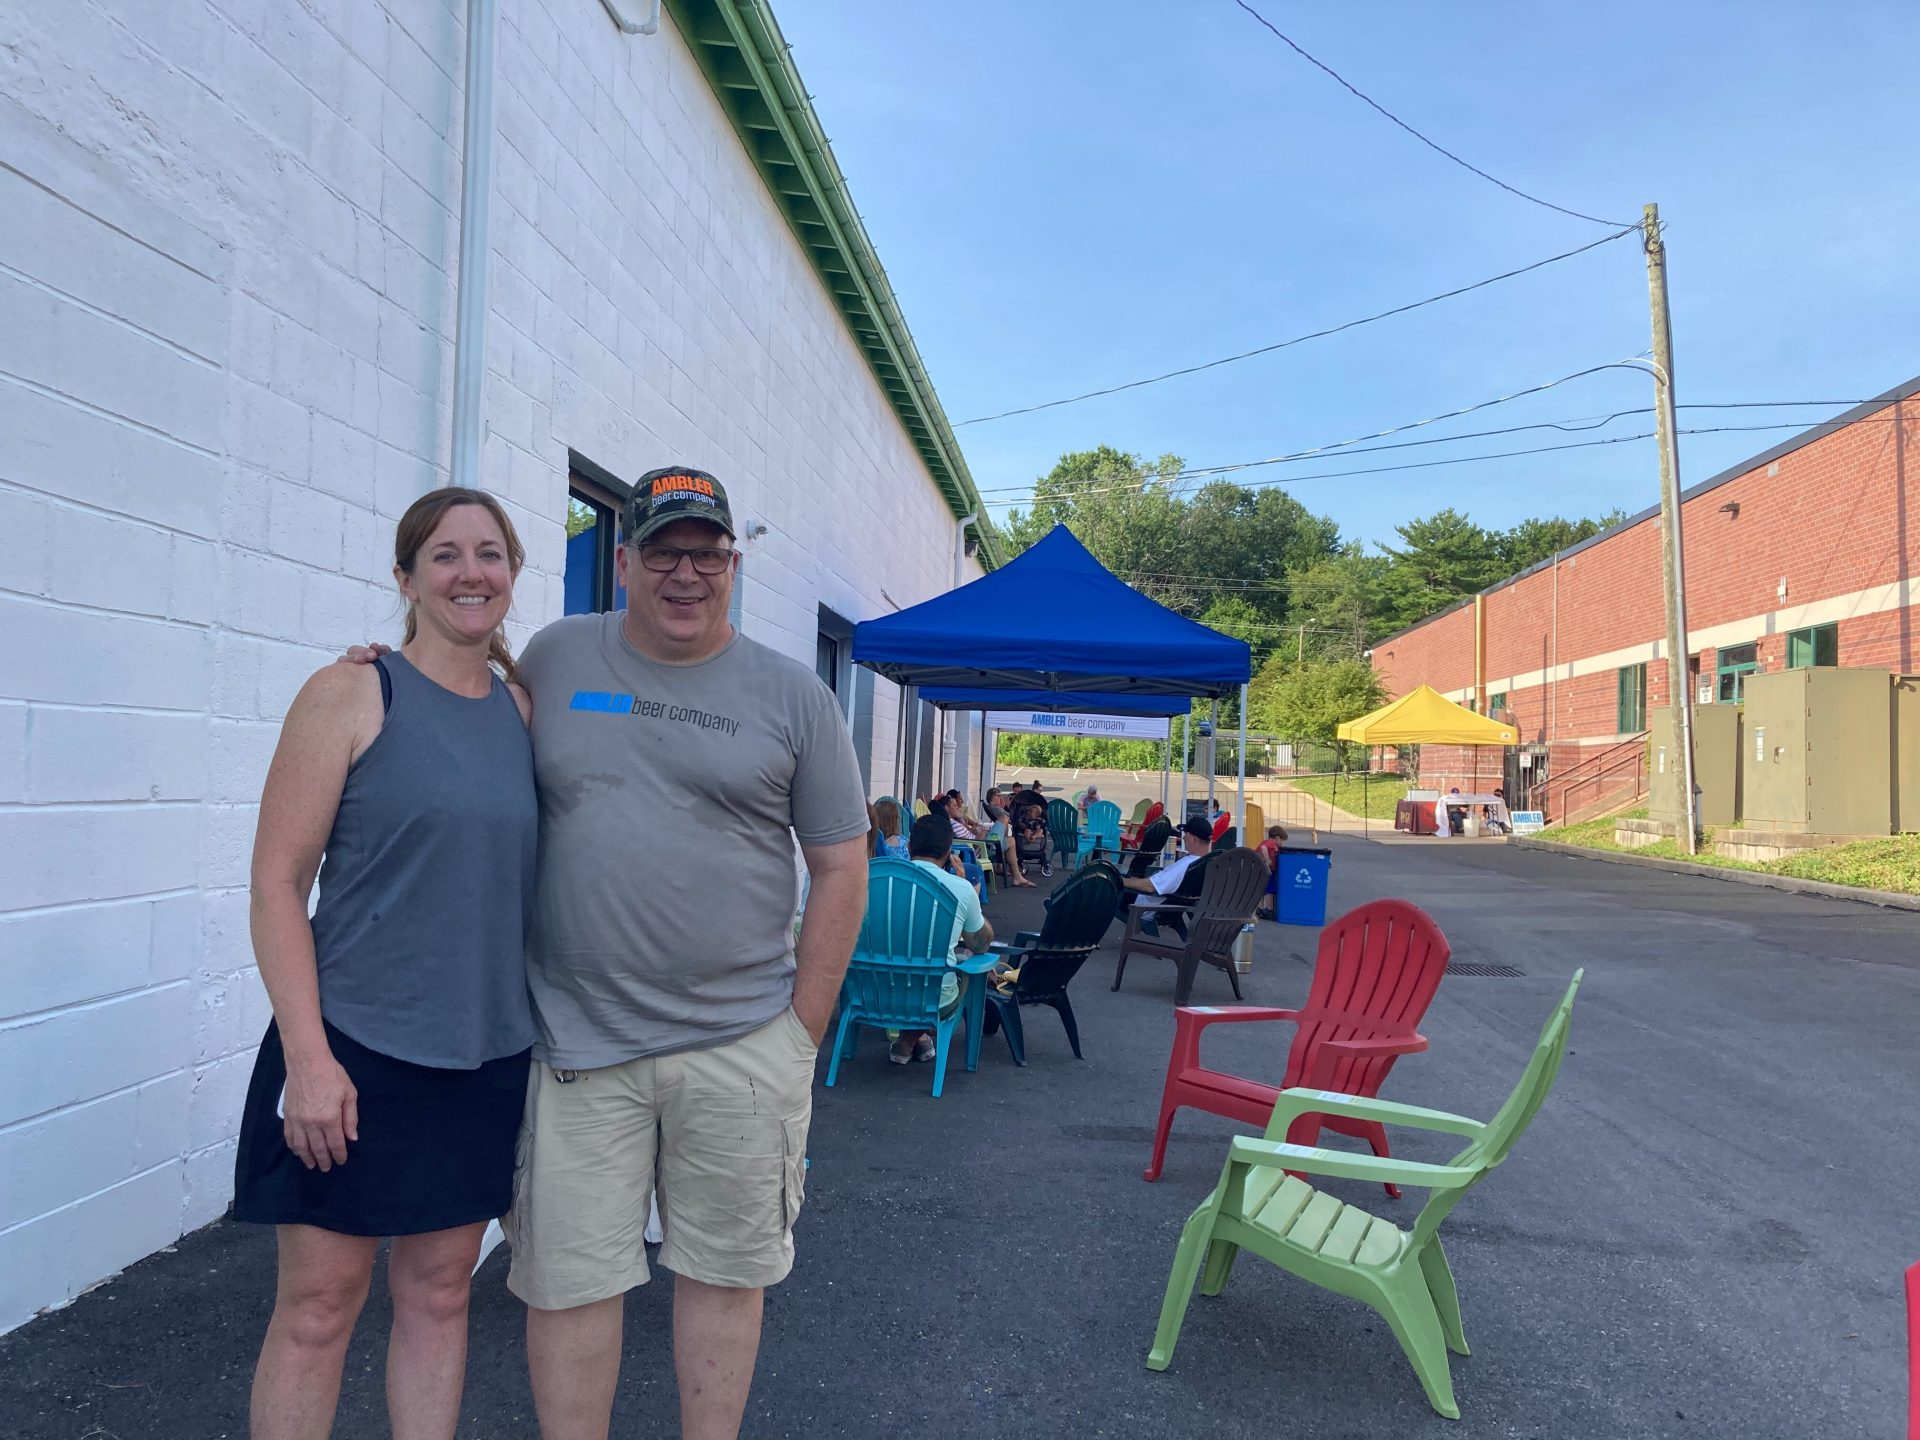 Liz and Doug Buddle own Ambler Brewing Company in Ambler, Pennsylvania. They have had to make multiple adjustments to their business operation to try and keep earning revenue during the pandemic.